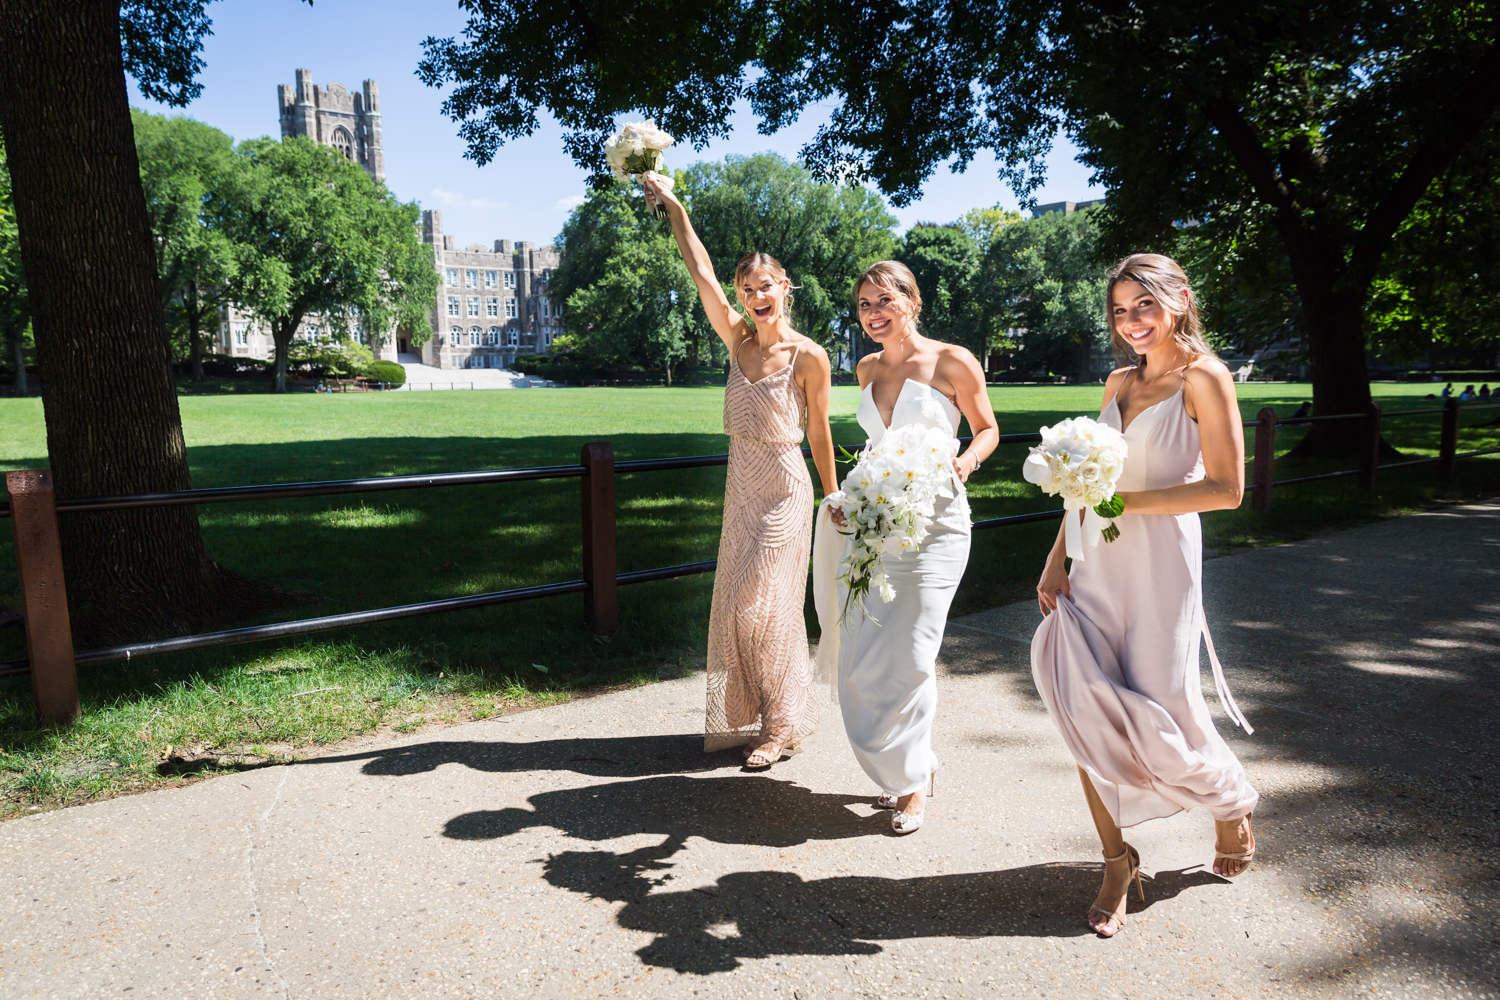 Bride and bridesmaids cheering for an article on Bronx Zoo wedding venue updates